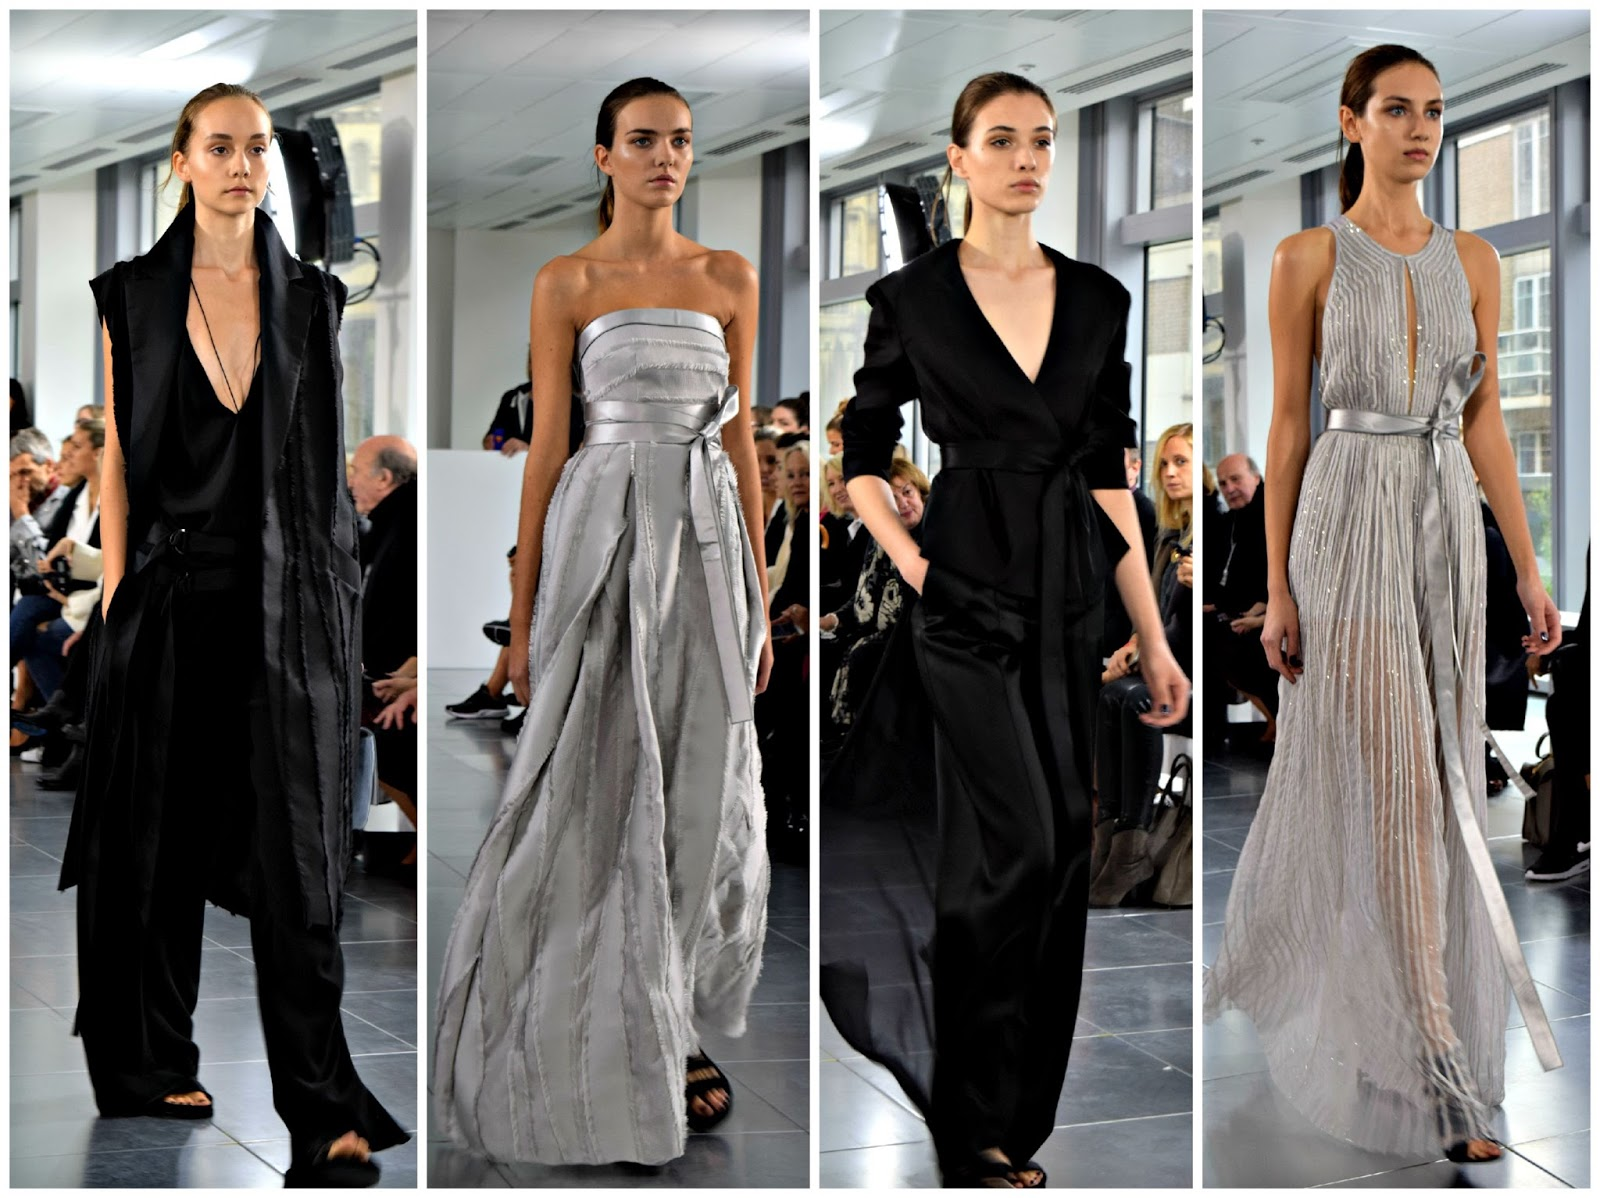 Amanda Wakeley London Fashion Week 2015 SS16